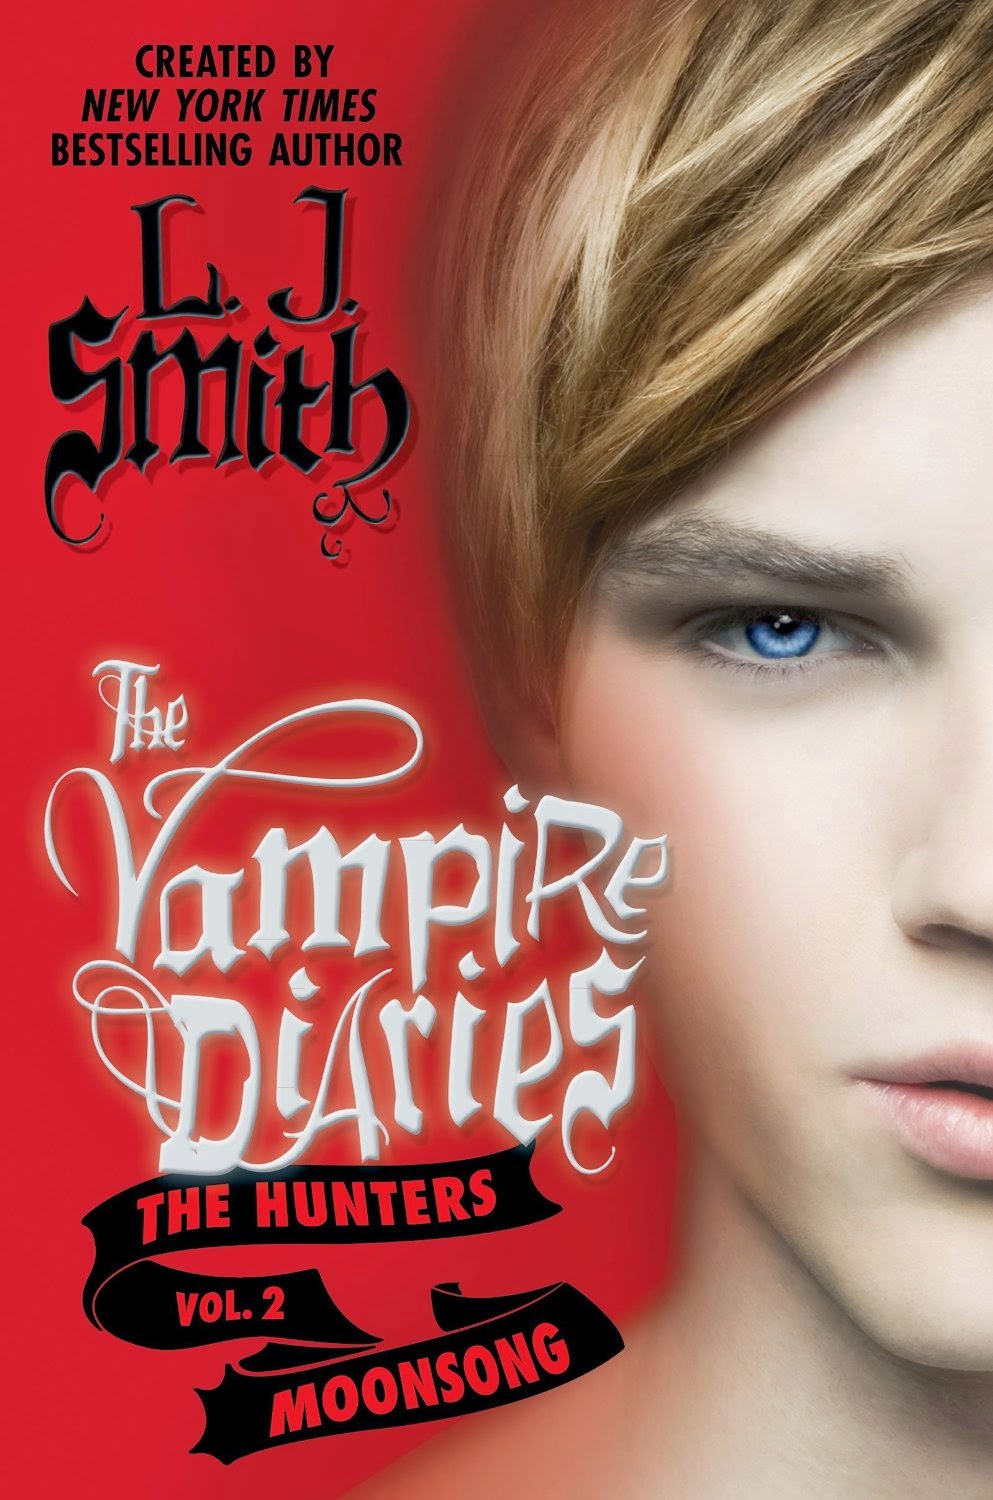 Cronicas Vampiricas Libros Descargar Lectora Entre Mundanos The Hunters Moonsong L J Smith